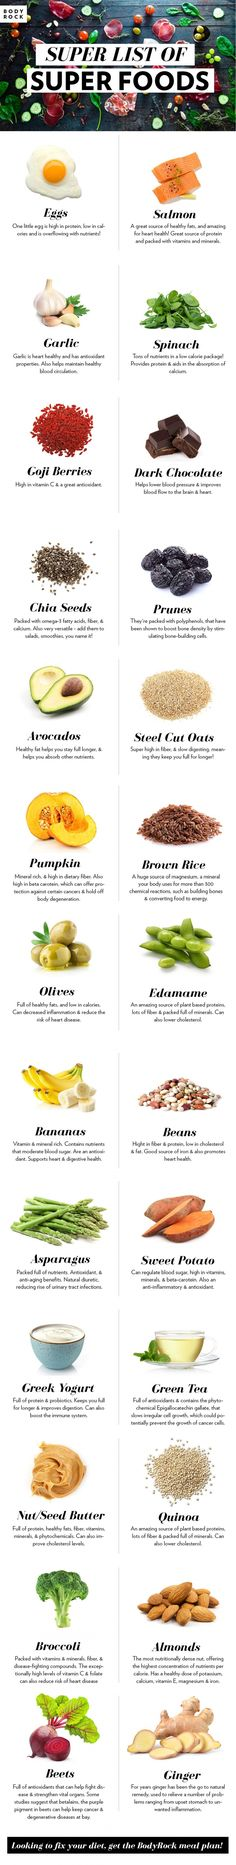 26 Super List of Super Foods #Infographics